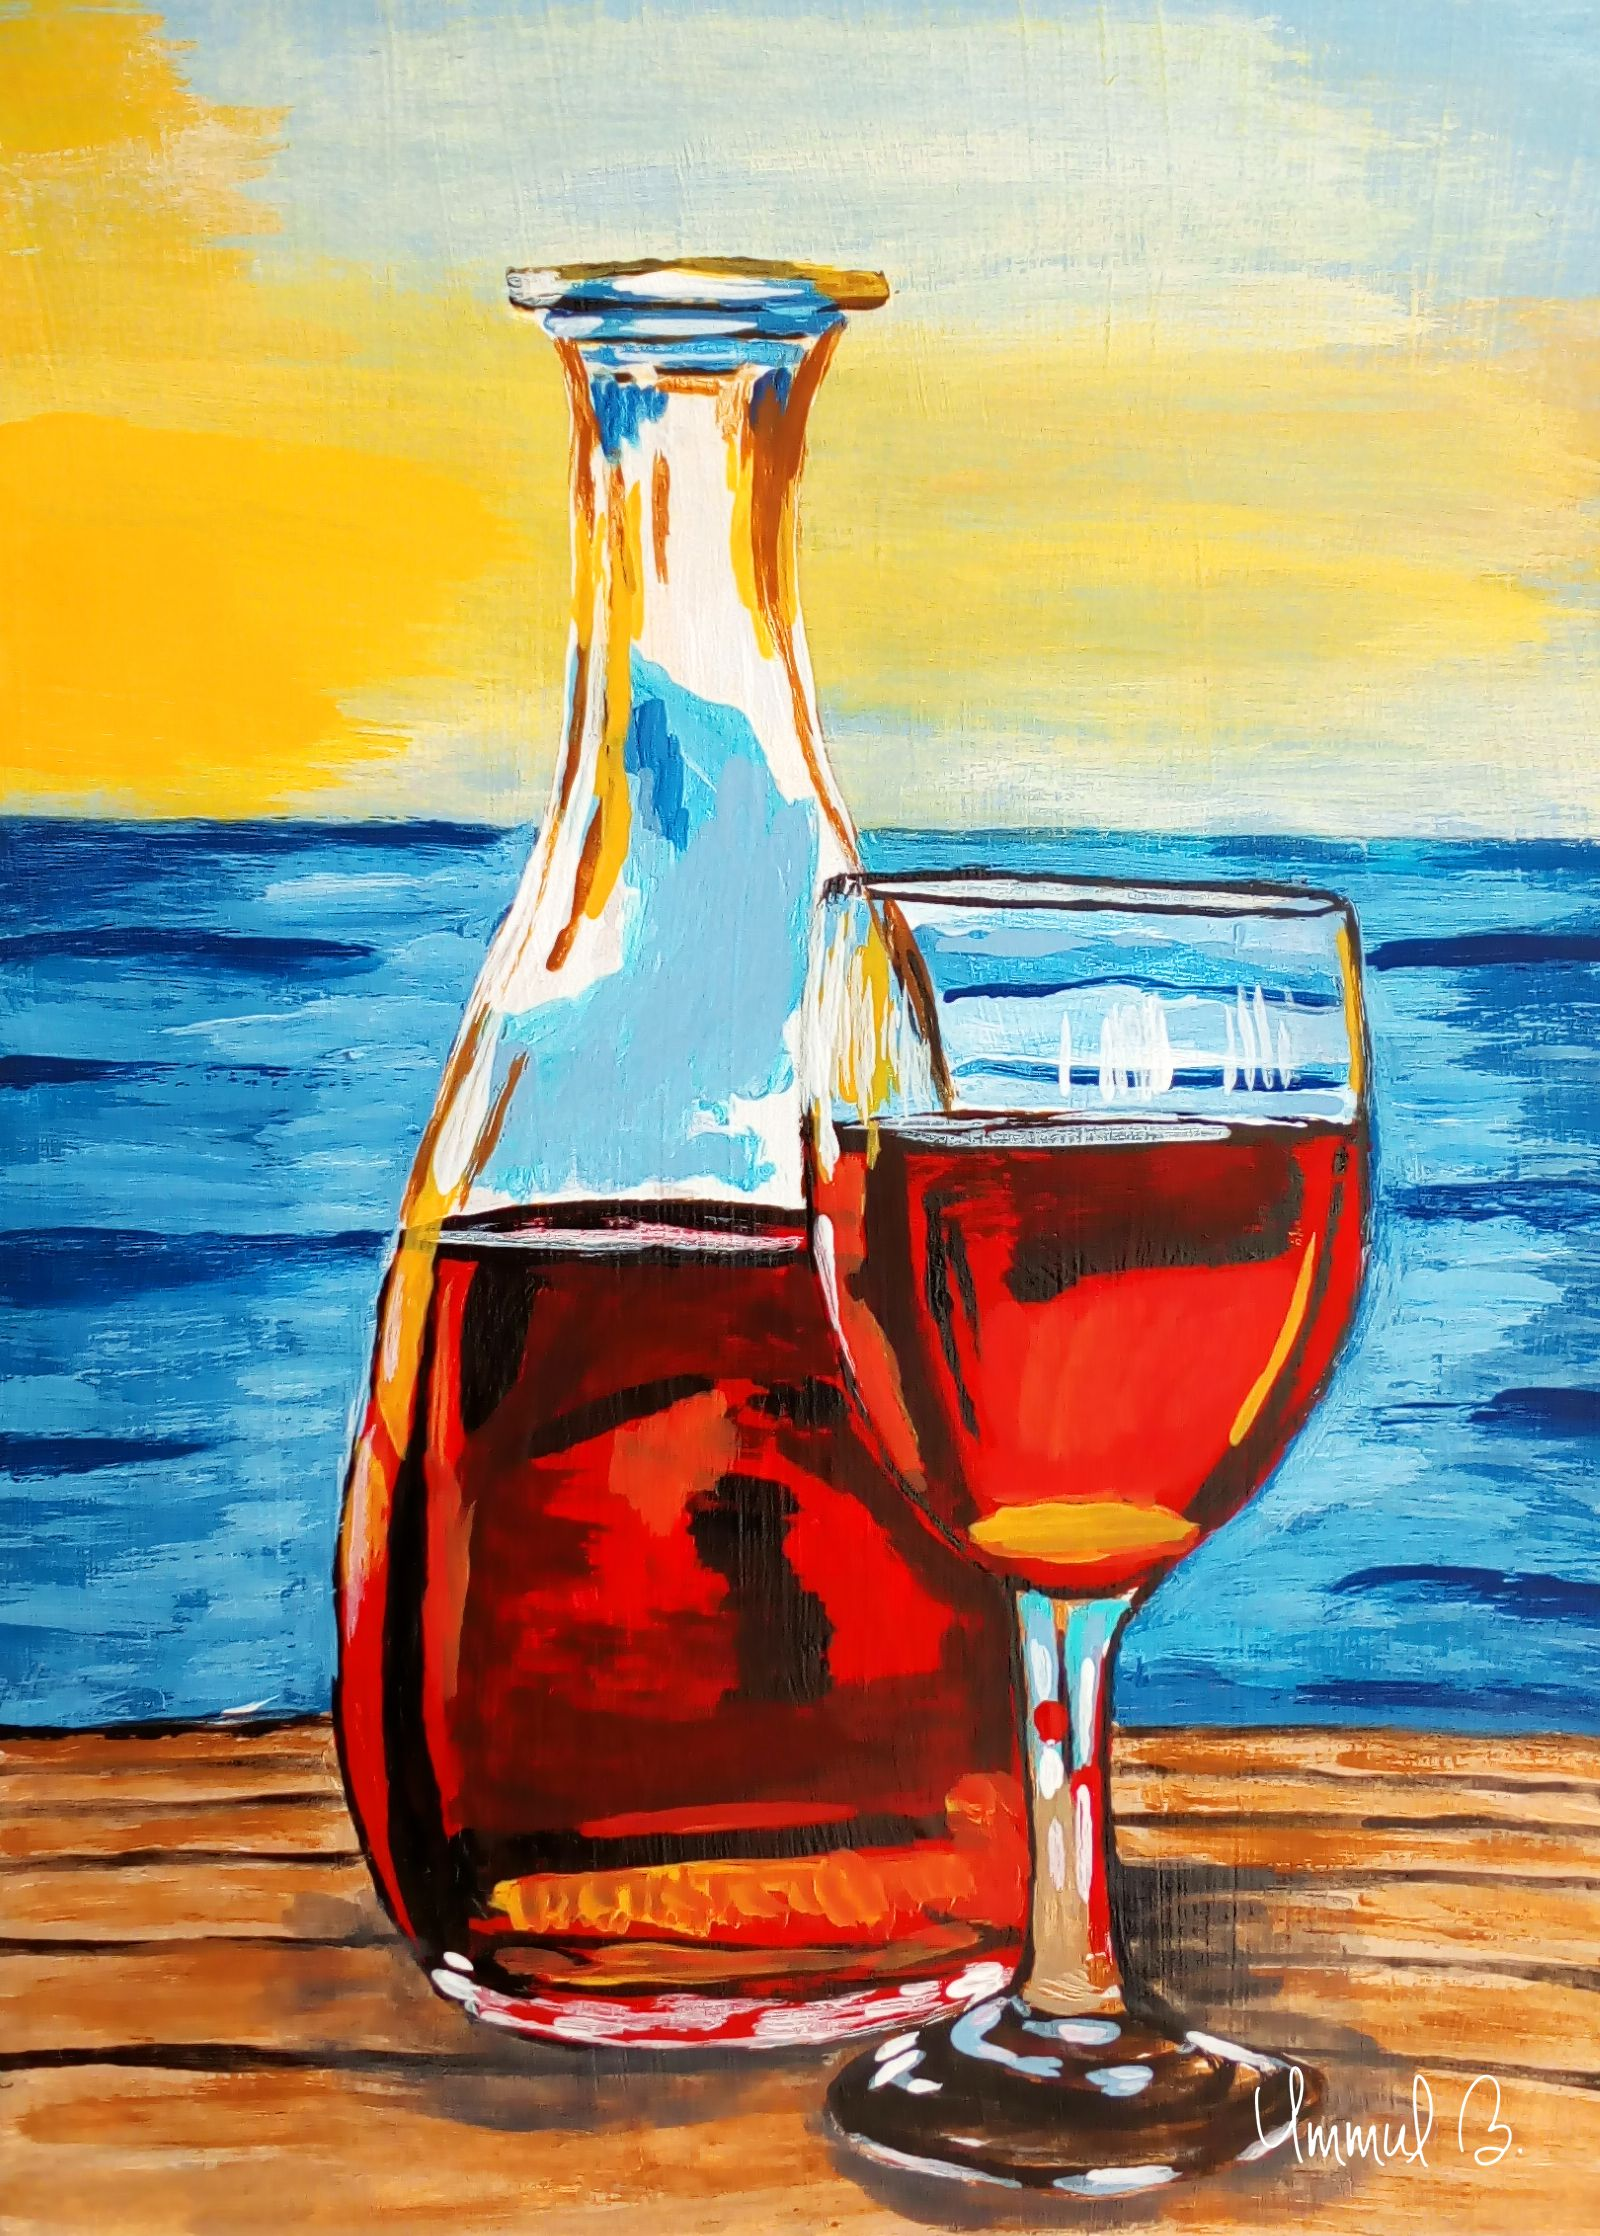 Wine Bottle And Glass By Ummul Bashar Mansura Wine Glass Art Wine Glass Designs Bottle Painting